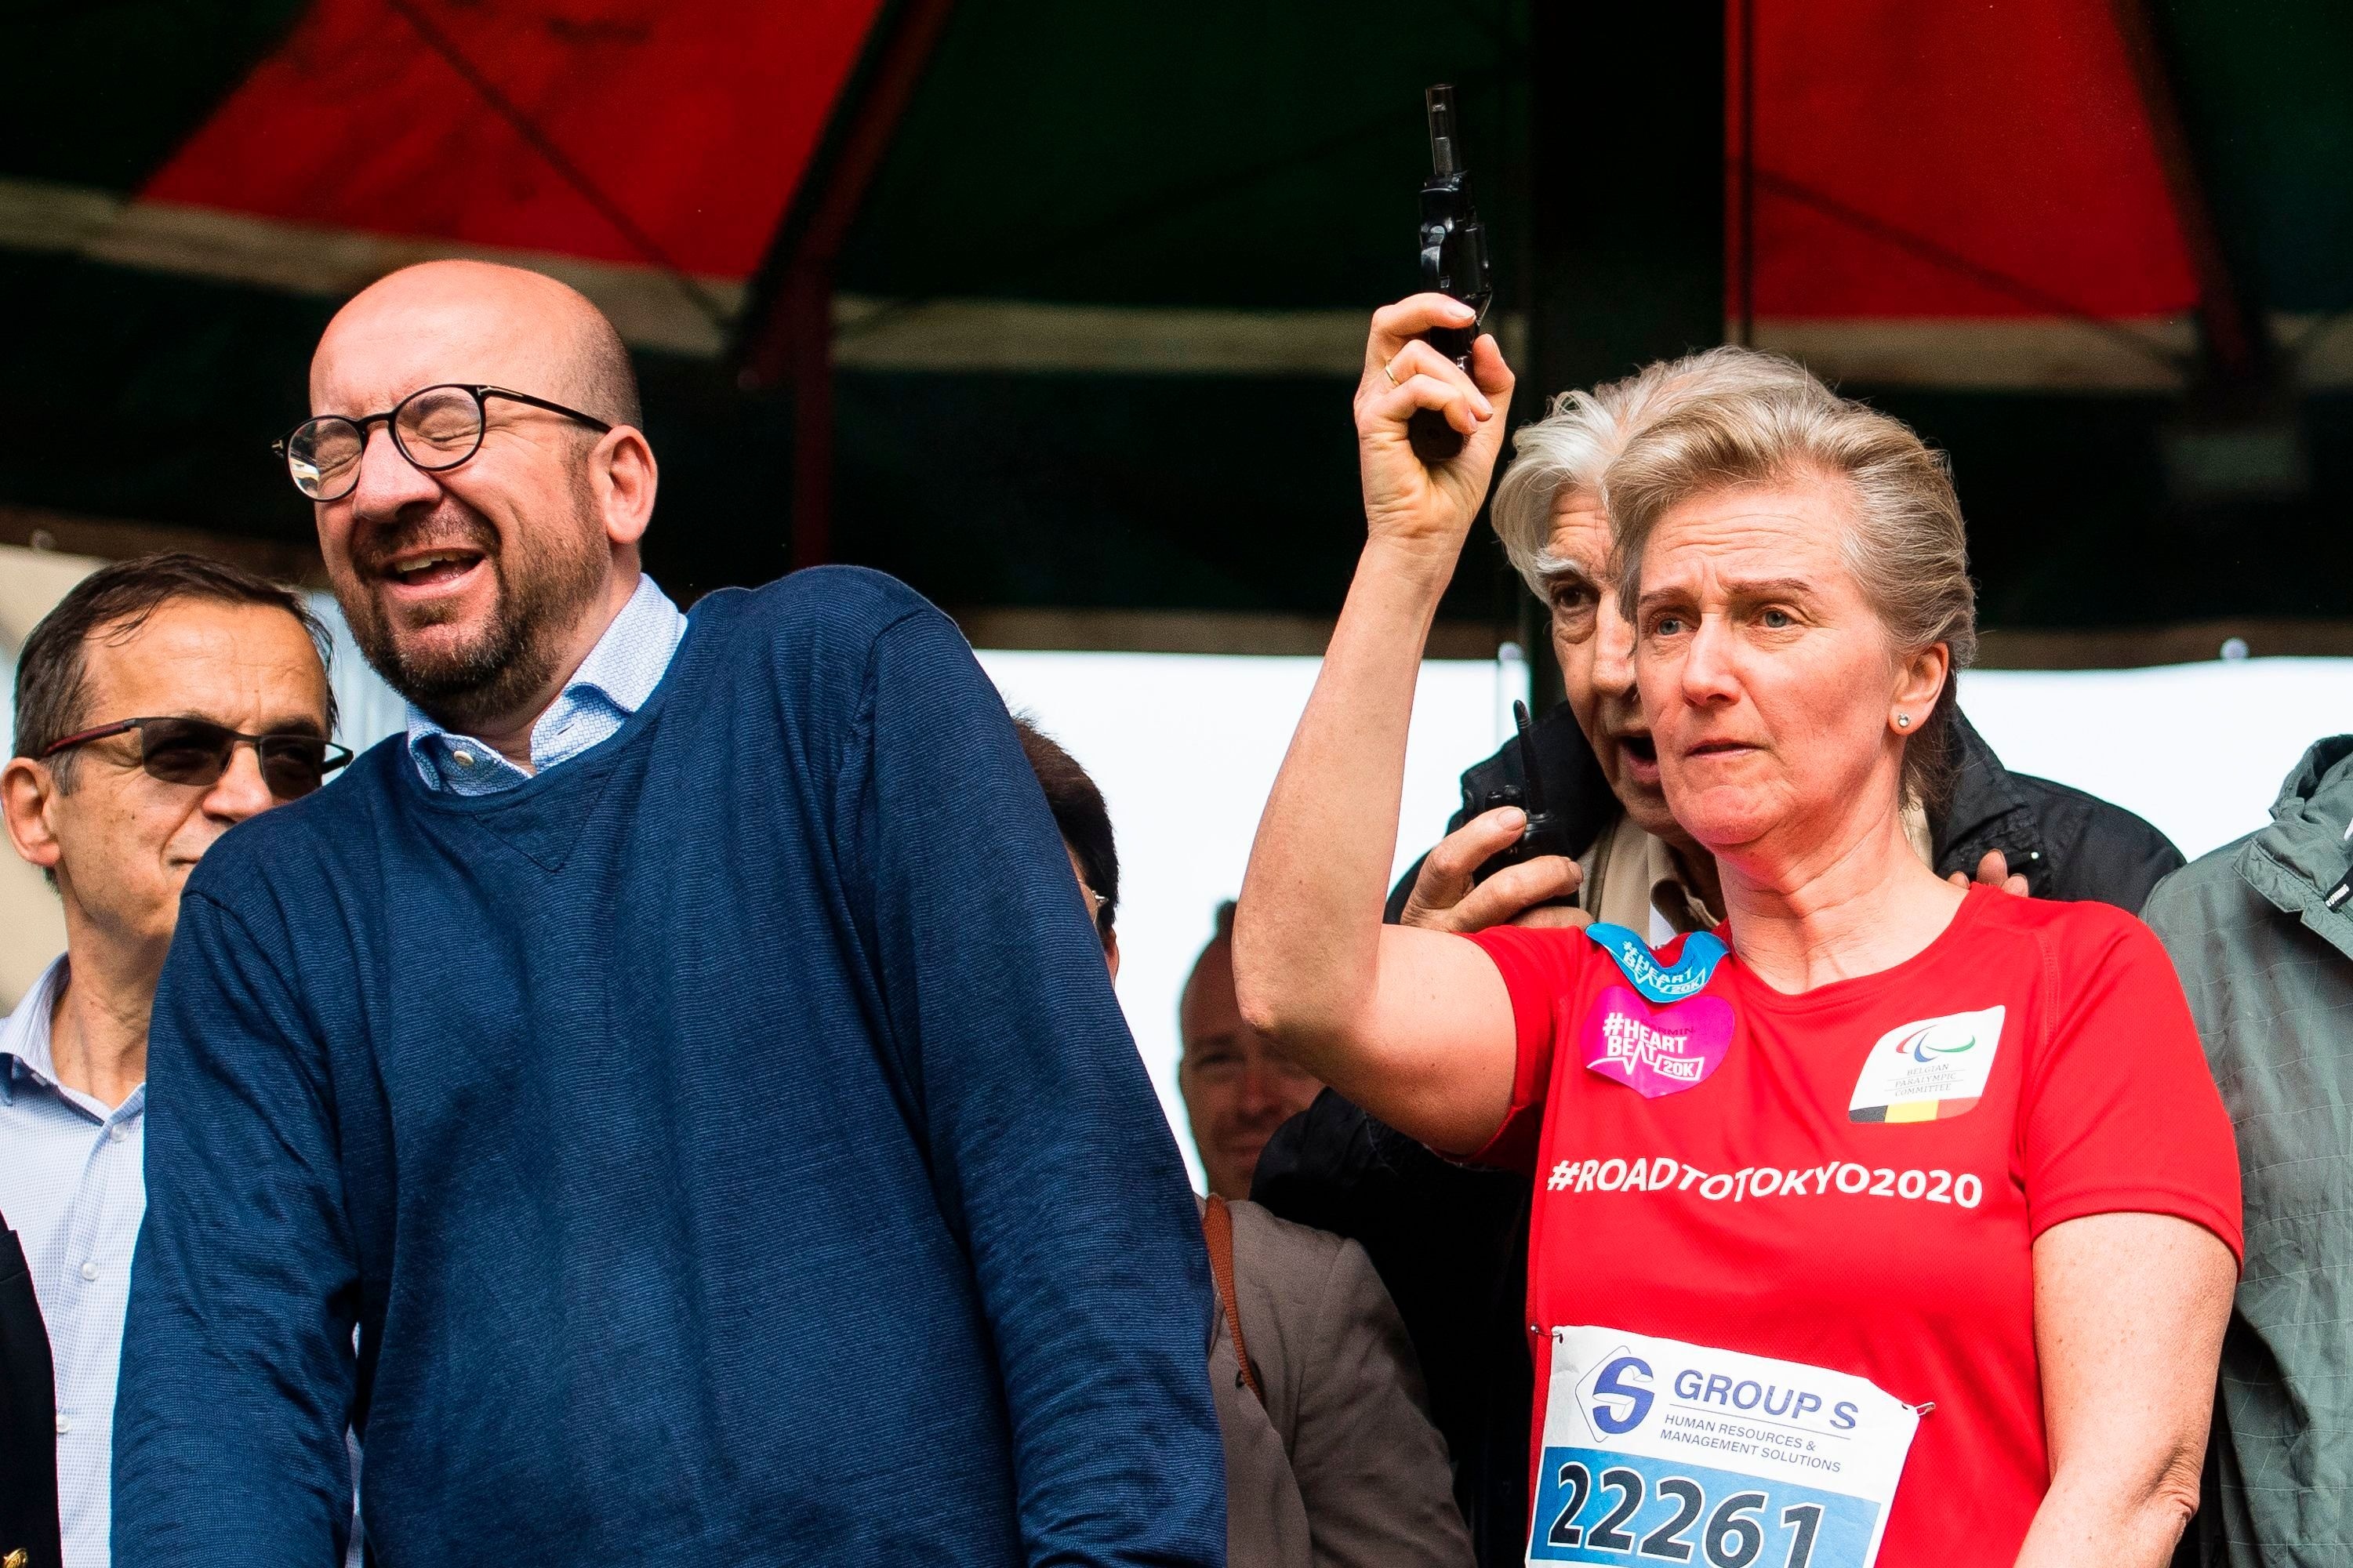 Belgian Prime Minister Charles Michel reacts as Princess Astrid of Belgium gives the start of the 38th edition of the Brussels' 20km run on May 28, 2017, in Brussels. / AFP PHOTO / Belga / LAURIE DIEFFEMBACQ / Belgium OUT        (Photo credit should read LAURIE DIEFFEMBACQ/AFP/Getty Images)